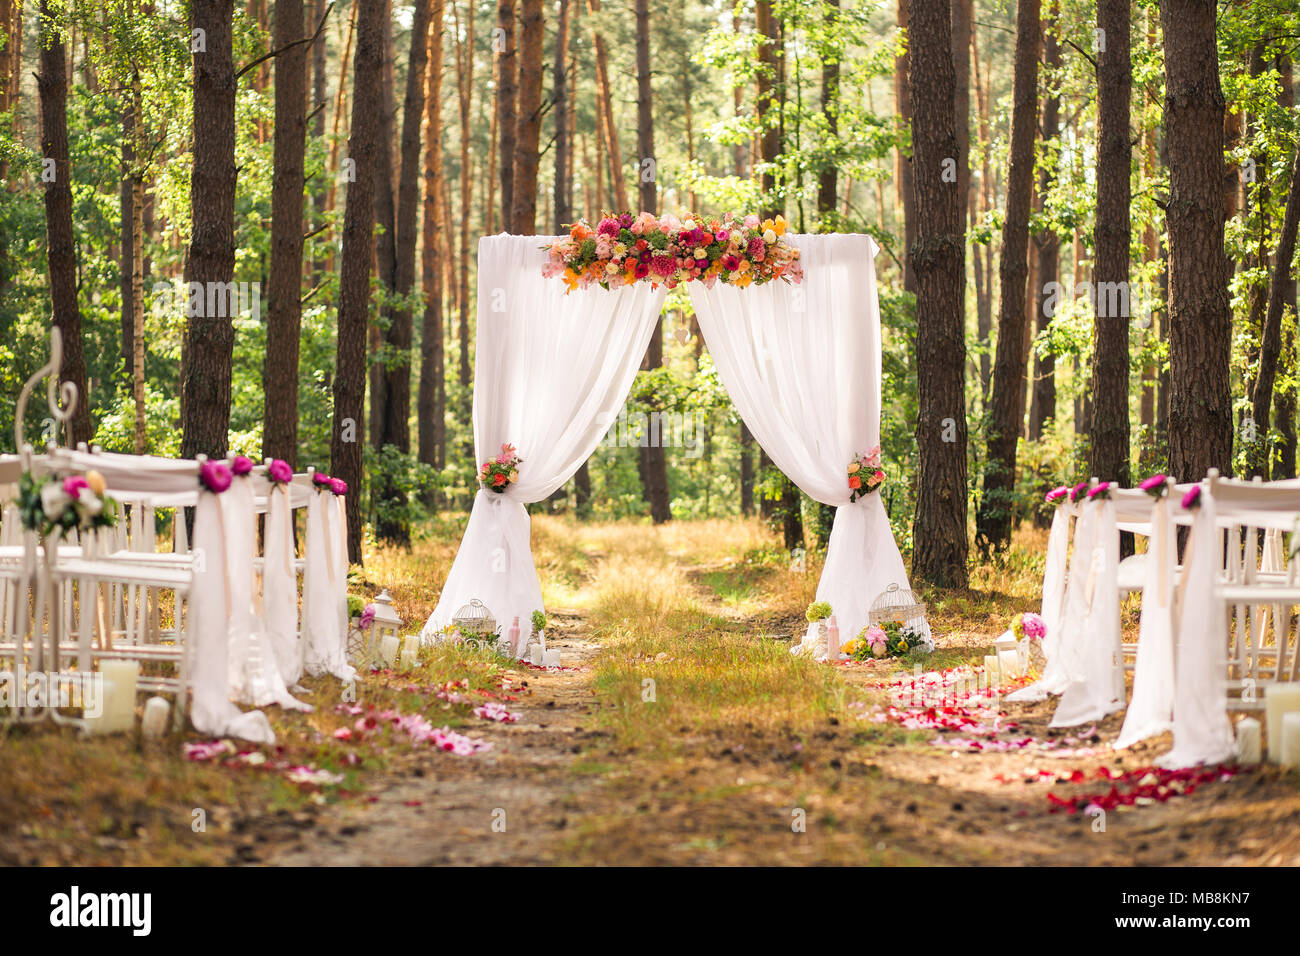 Beautiful romantic festive place made with wooden square and floral beautiful romantic festive place made with wooden square and floral roses decorations for outside wedding ceremony in green park wedding settings at junglespirit Gallery